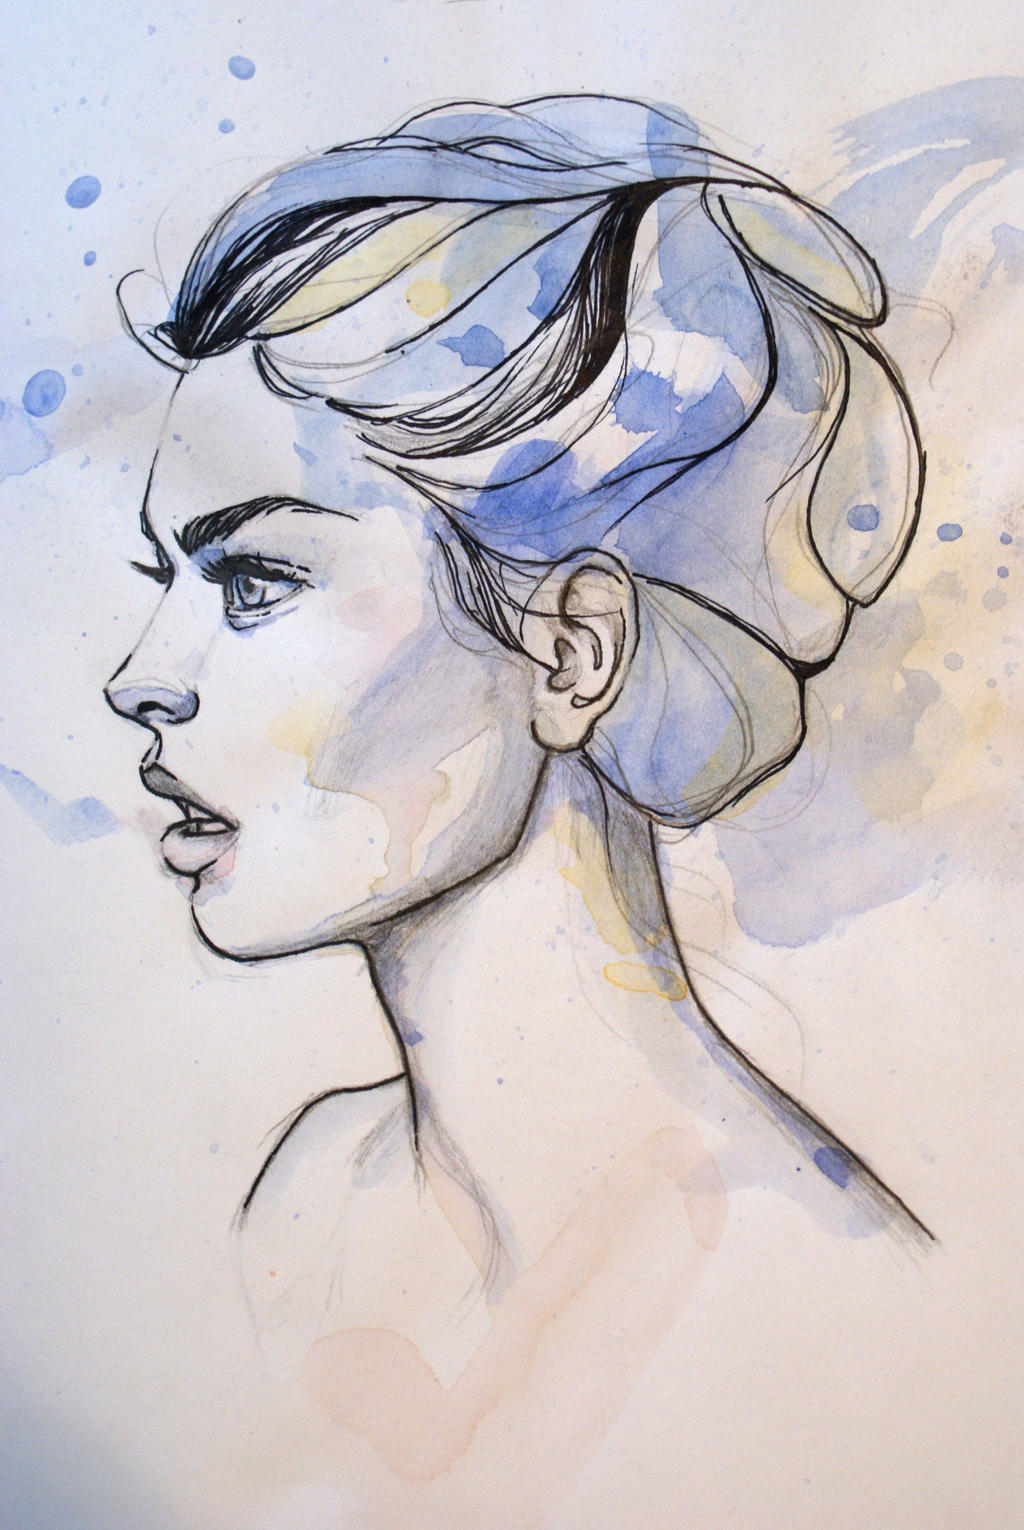 Quick watercolor and pen portrait by mward28 on DeviantArt